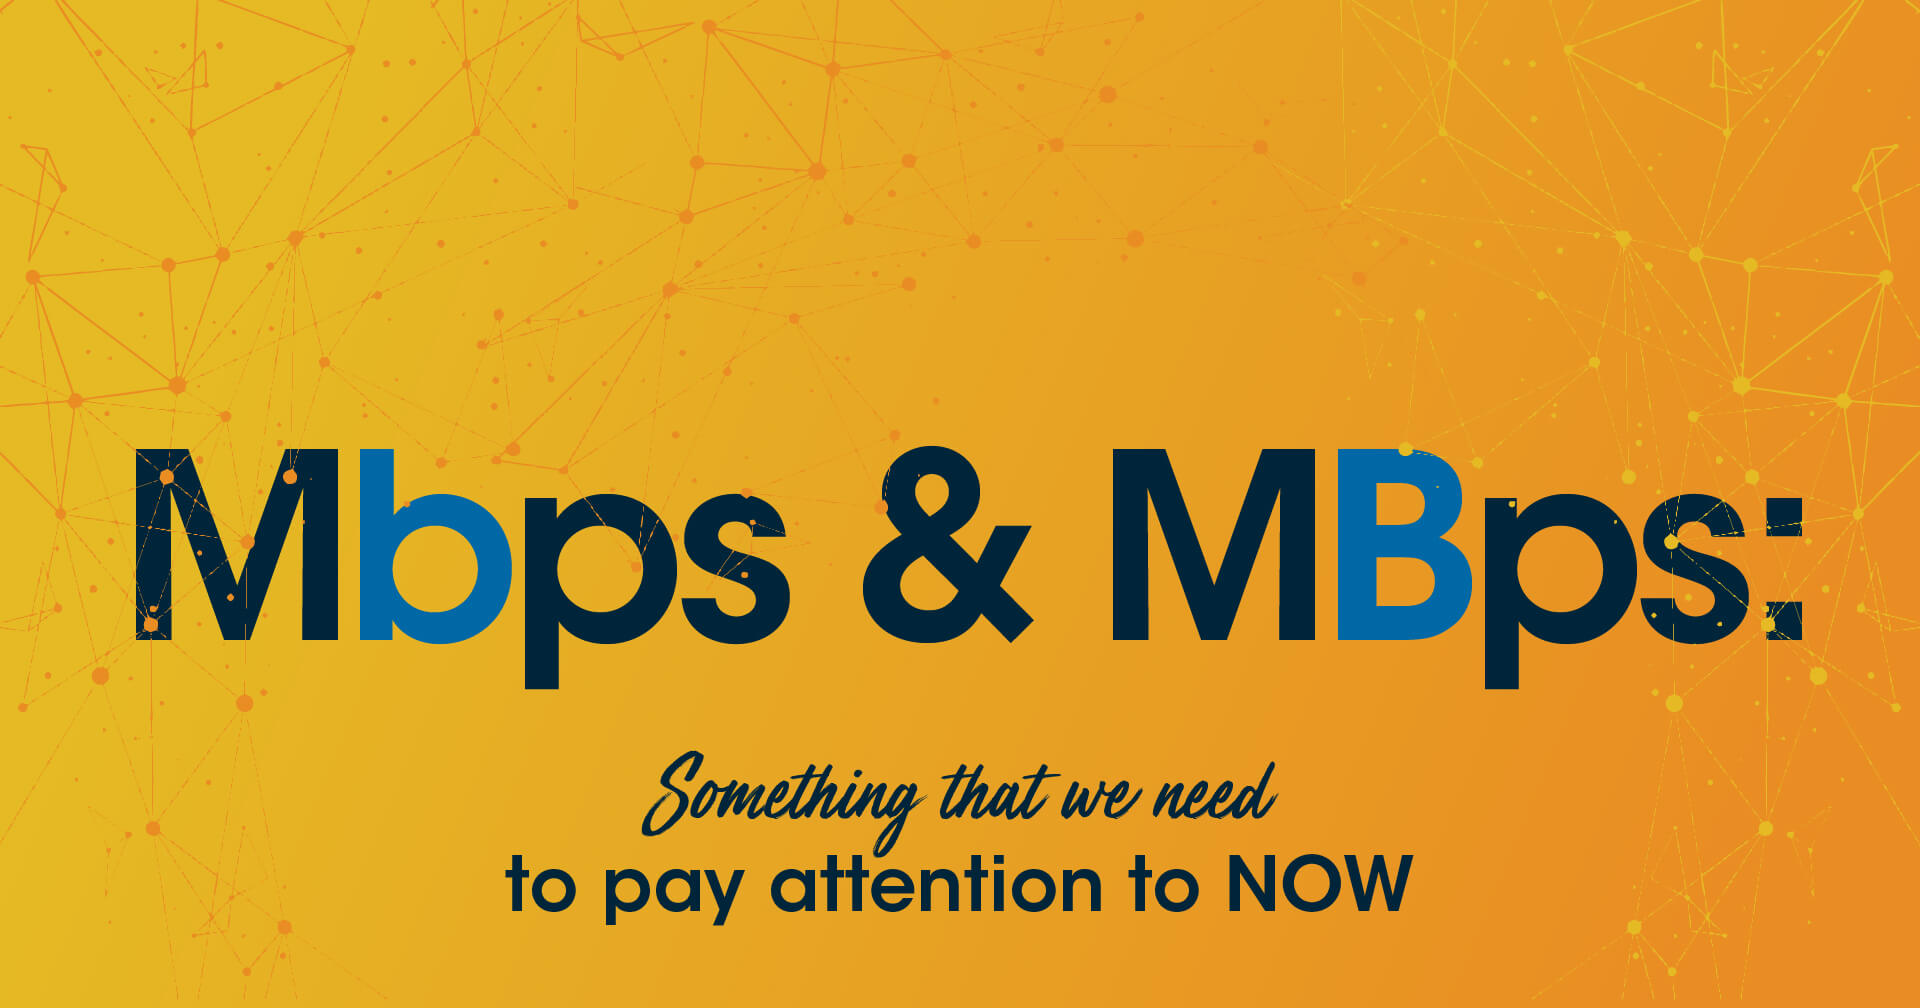 Mbps and MBps: Something that we need to pay attention to now